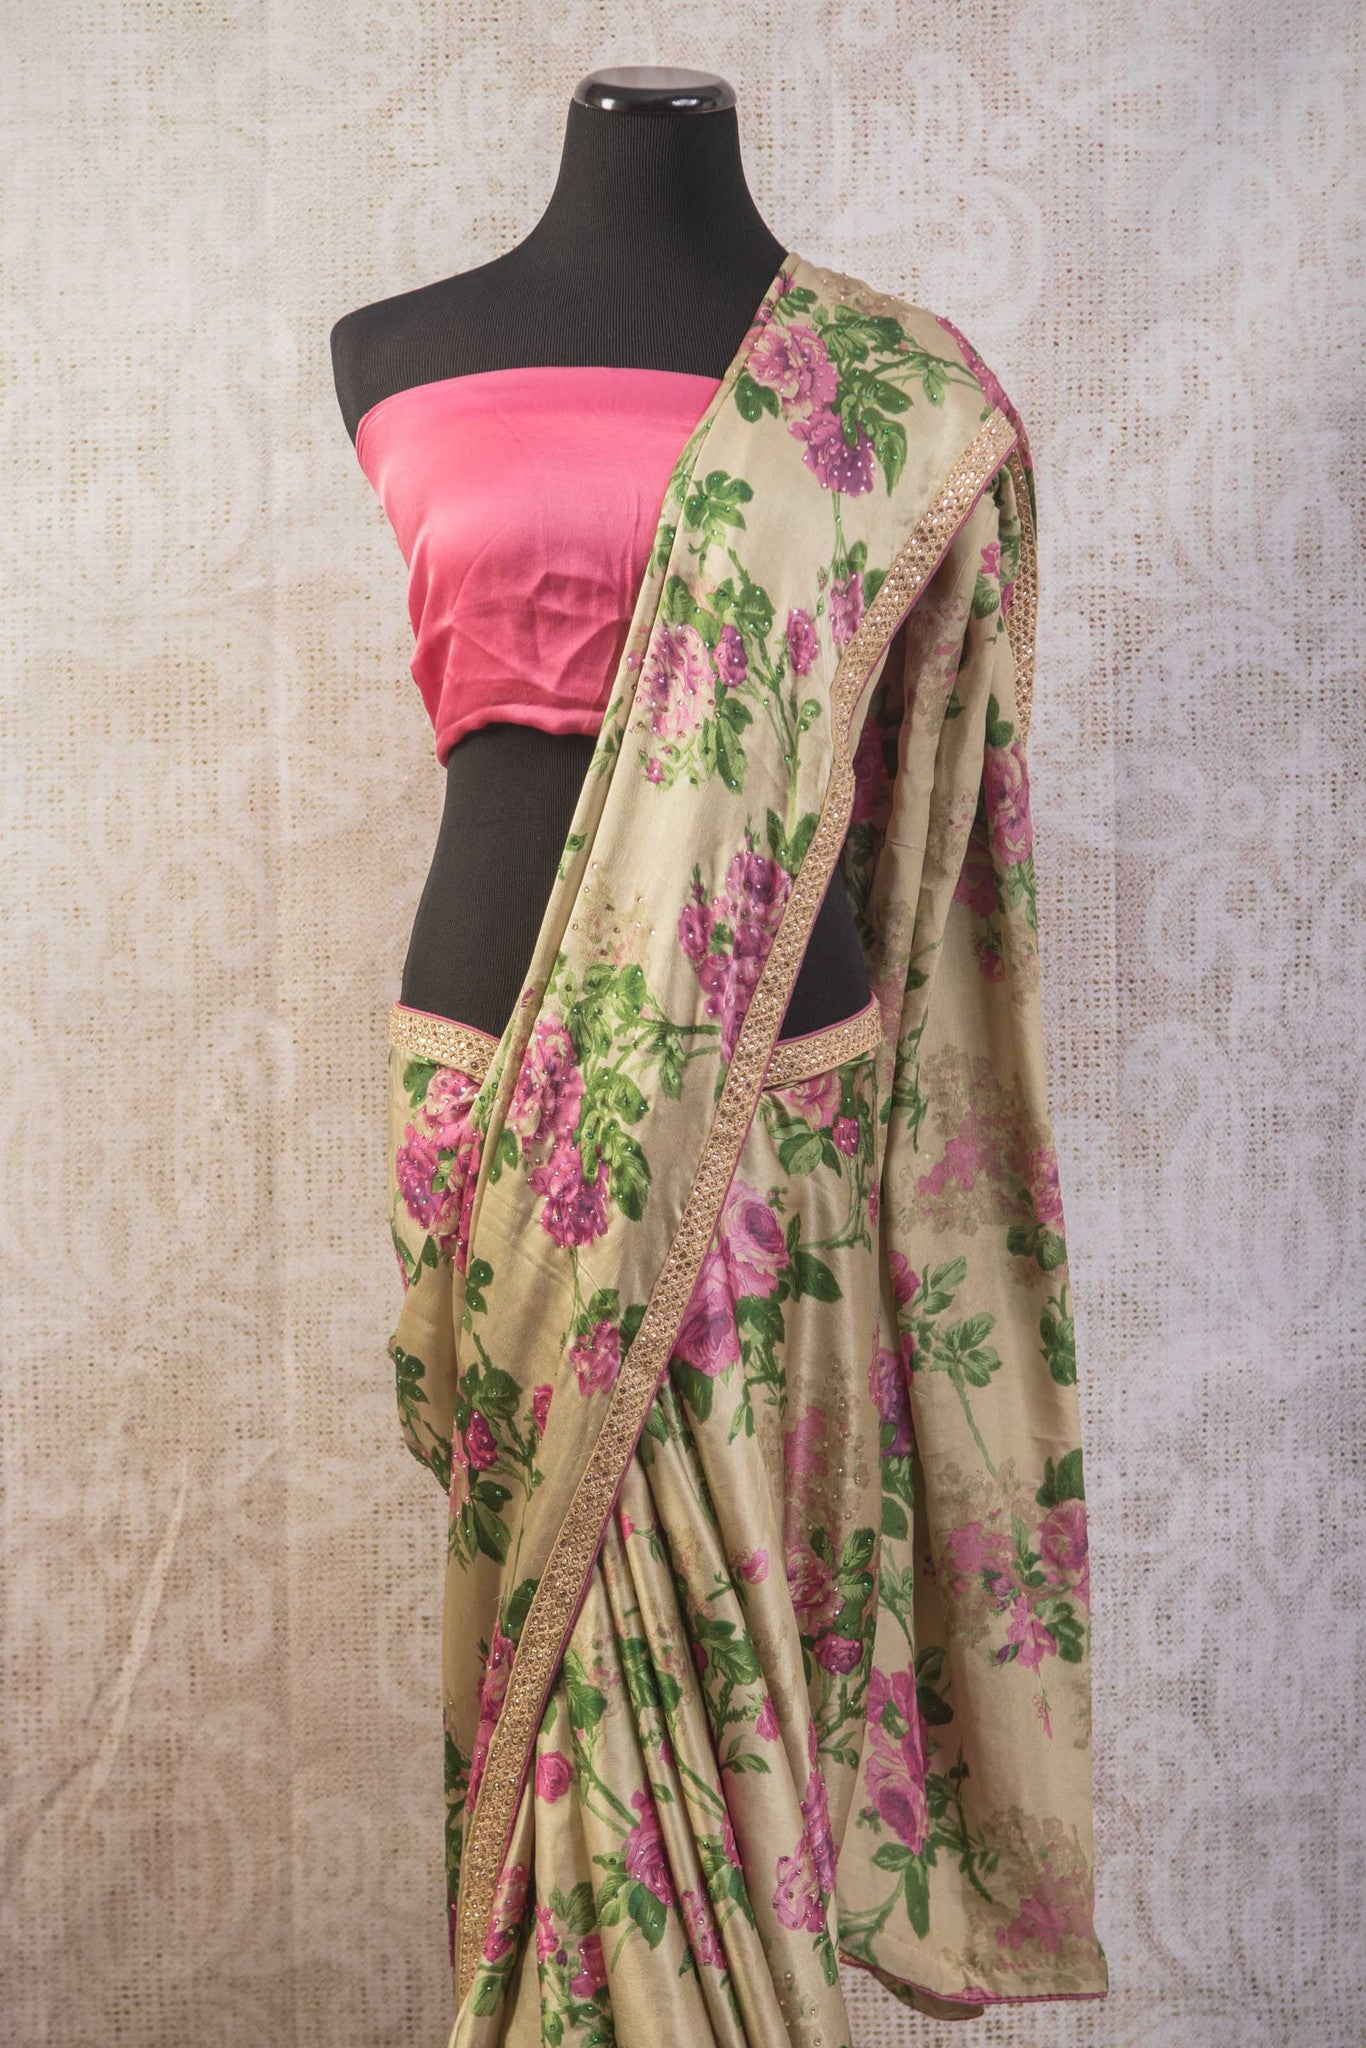 90a681 This floral saree available online at our Indian clothing store online in USA is a stunner. This beige satin crepe saree with purple and green rose print is an ideal party saree to have in your ethnic wear wardrobe.